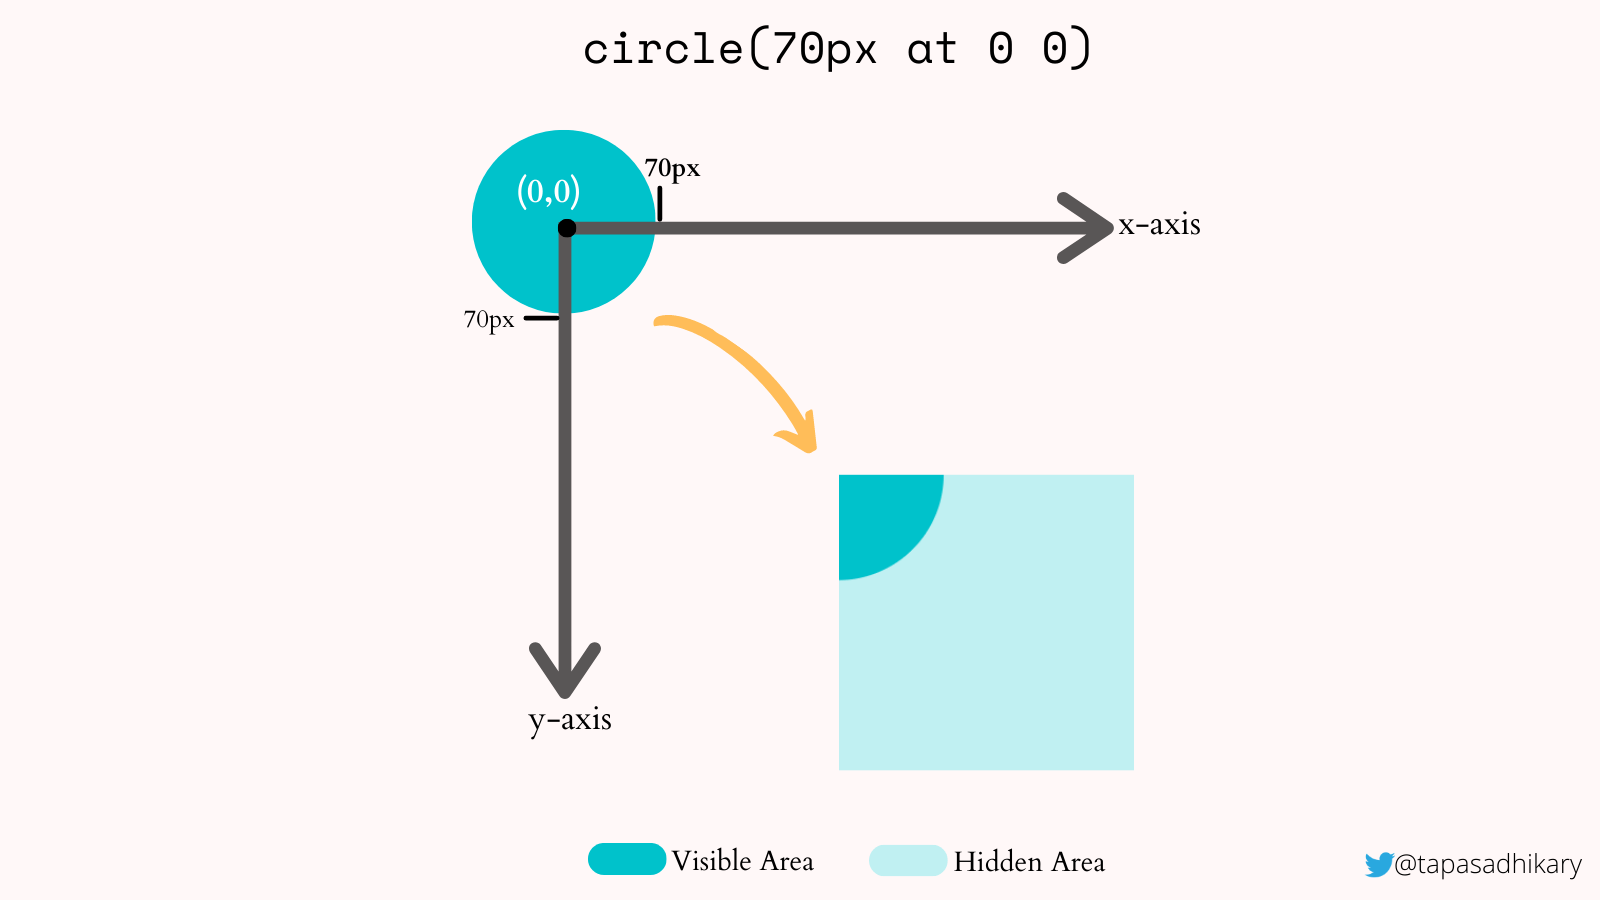 The center of a blue circle is placed at the 0,0 coordinates with a 70px by 70px area clipping the bottom-left region of the circle.